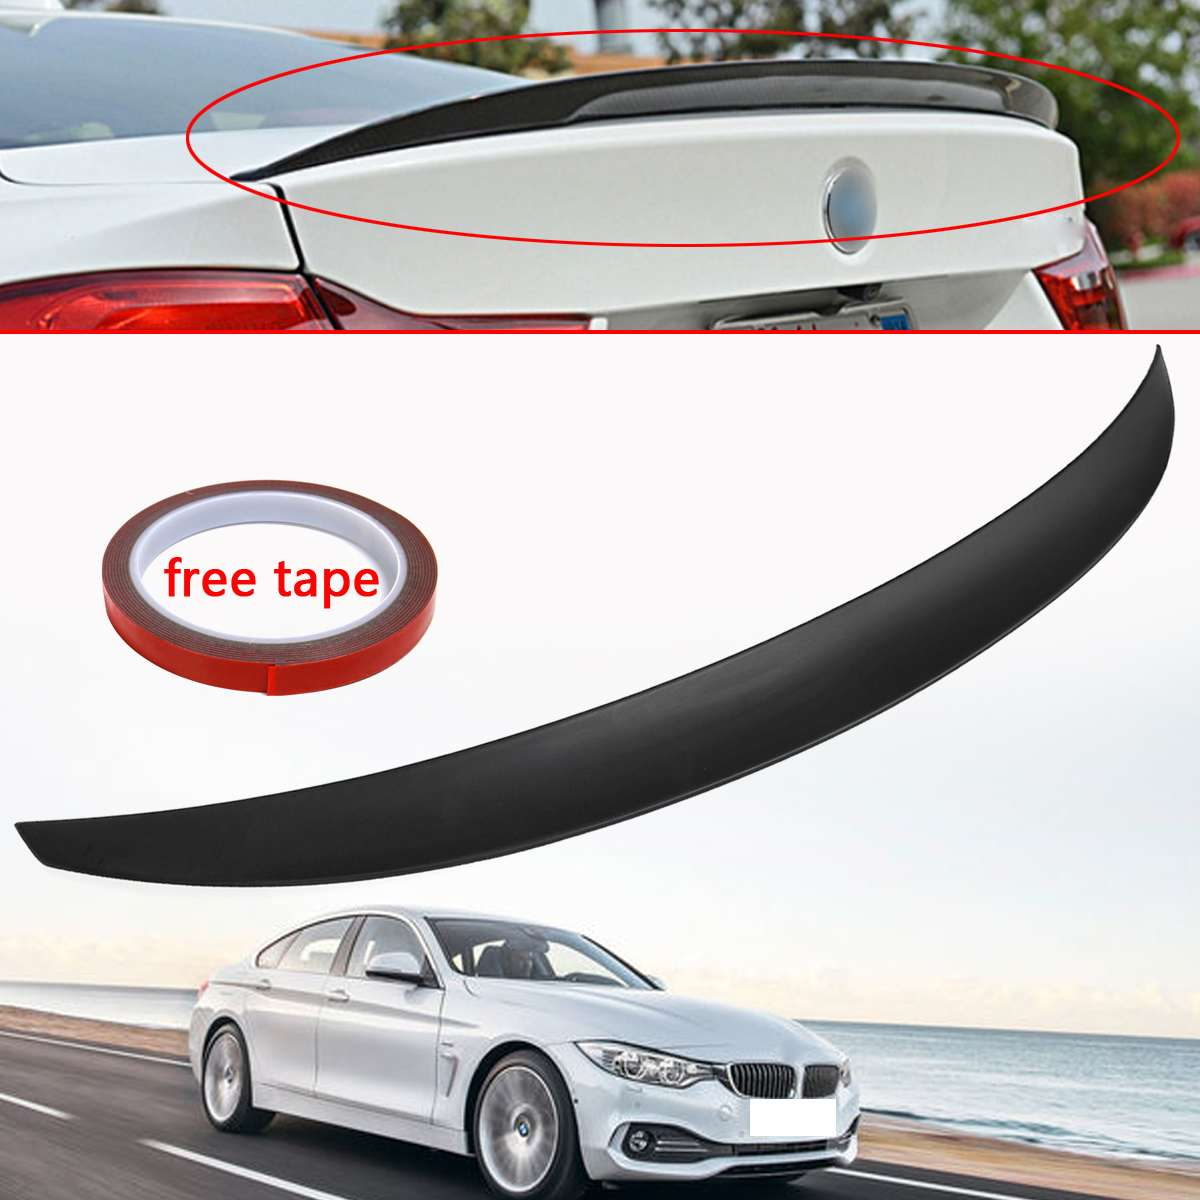 New Rear Trunk Spoiler Wing Performance Style for BMW 4-Series F36 4 Door Gran for Coupe 2014 2015 2016 - UP 420i 420d 428iNew Rear Trunk Spoiler Wing Performance Style for BMW 4-Series F36 4 Door Gran for Coupe 2014 2015 2016 - UP 420i 420d 428i